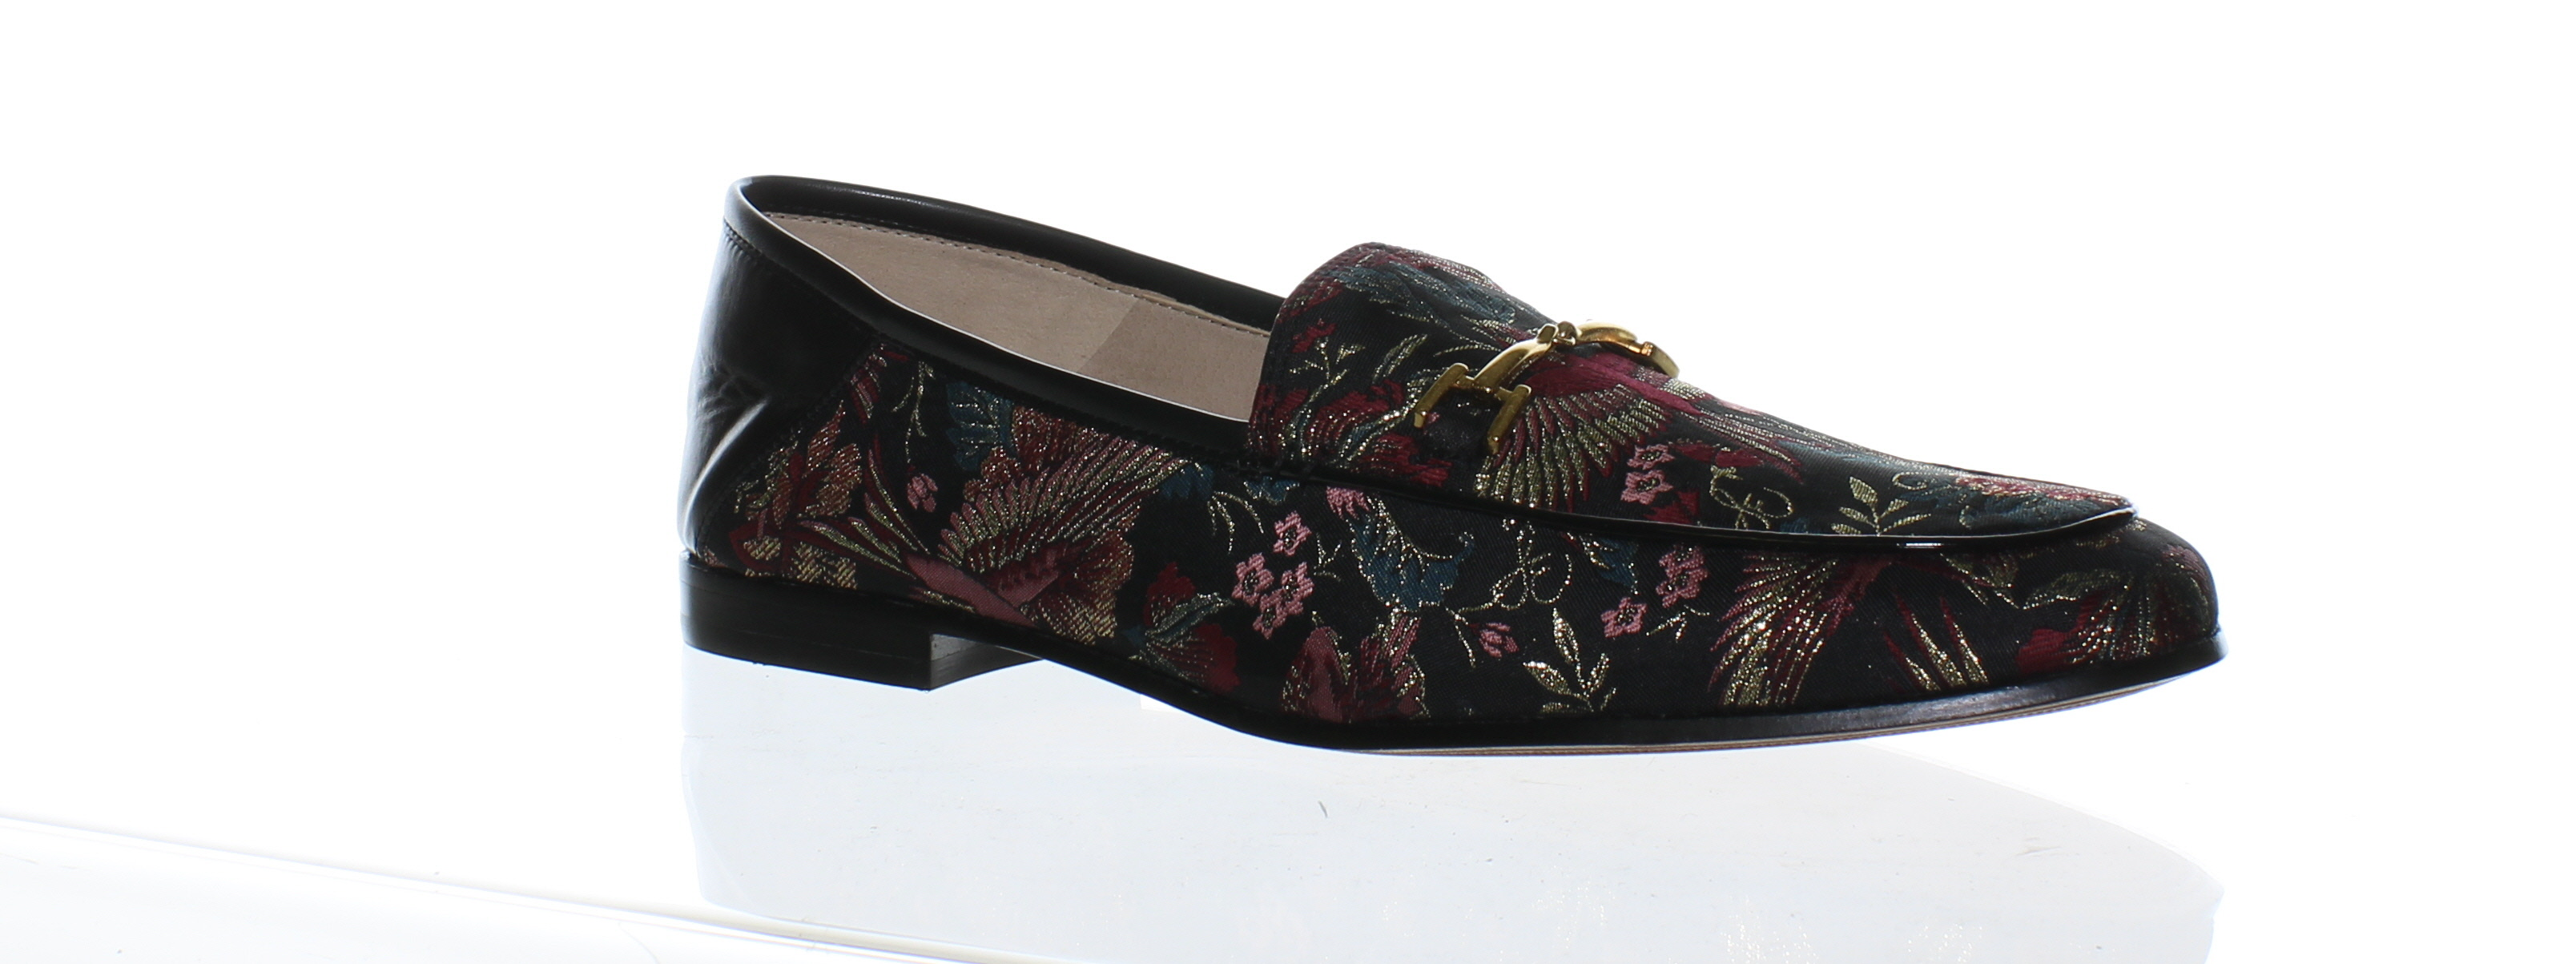 f8dbf8bf3a458 Details about Sam Edelman Womens Loraine Black Loafers Size 9 (165379)